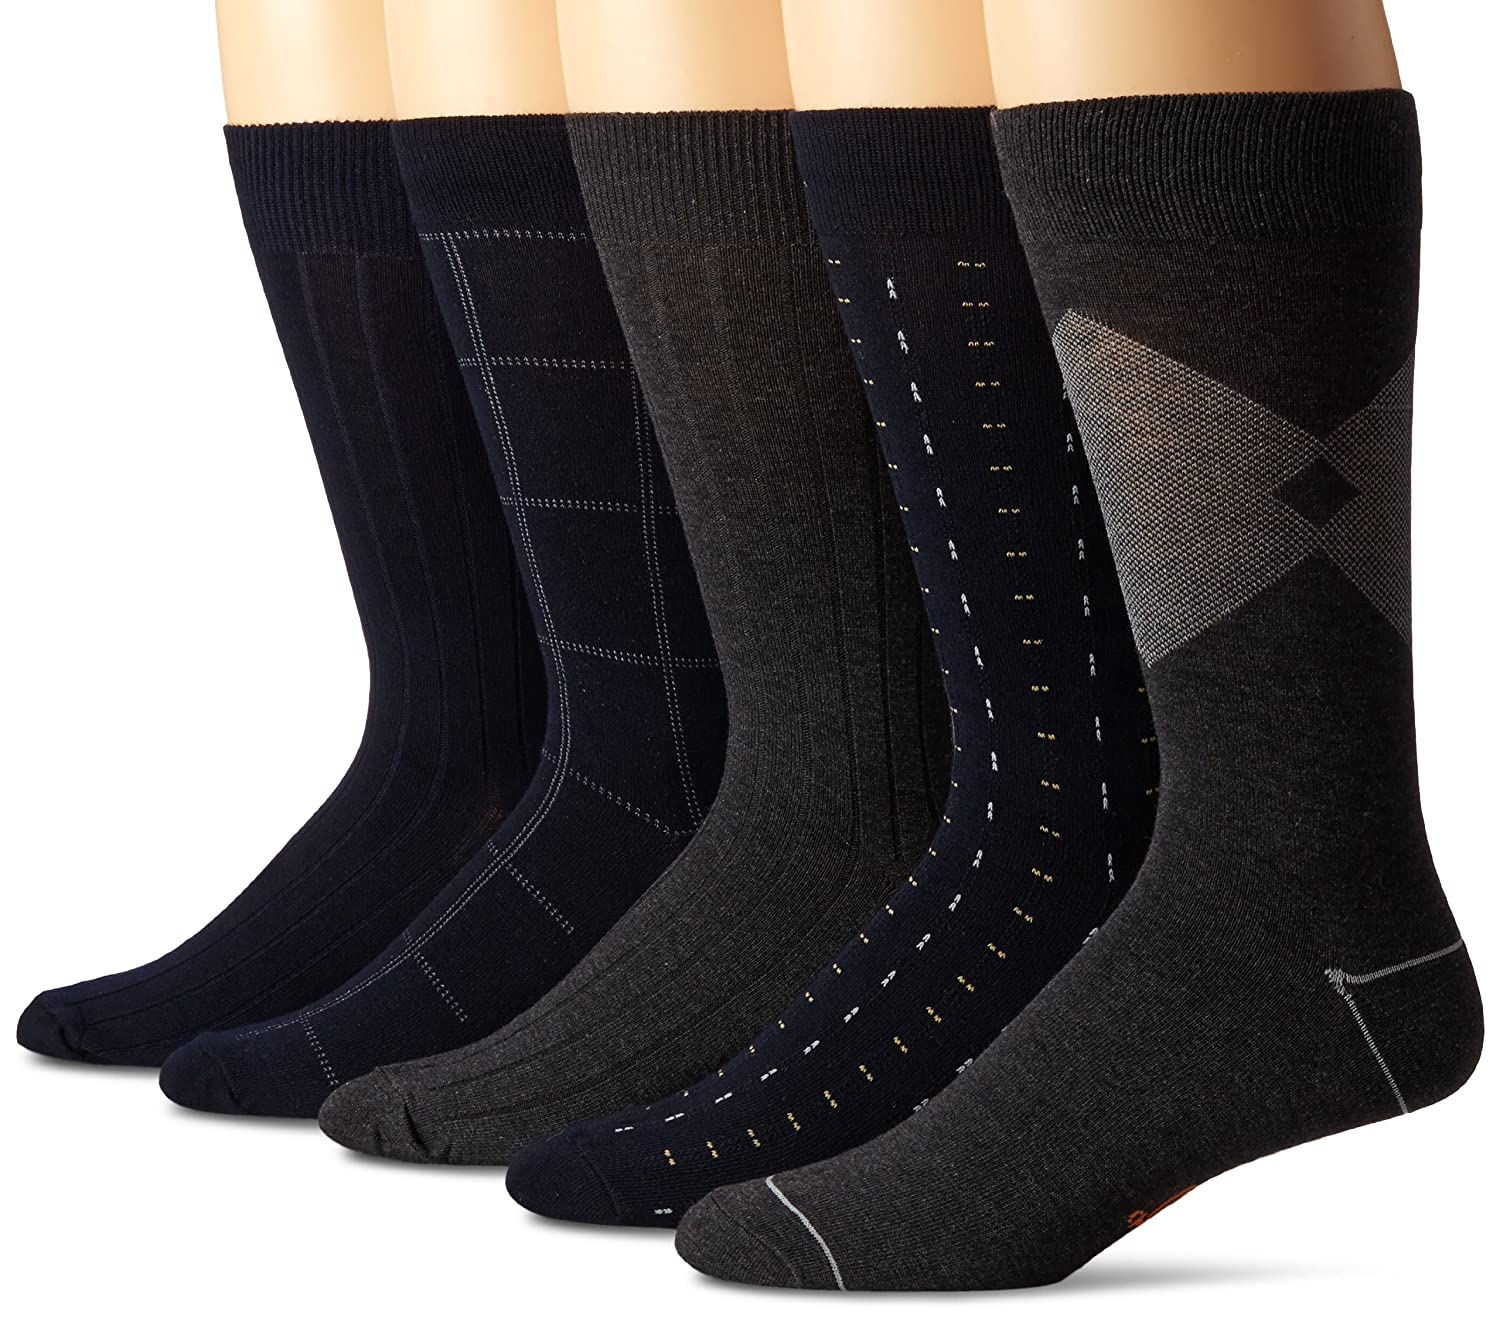 Dockers Men's 5 Pack Classics Dress Dashed Crew Socks Black Royce Too D51006